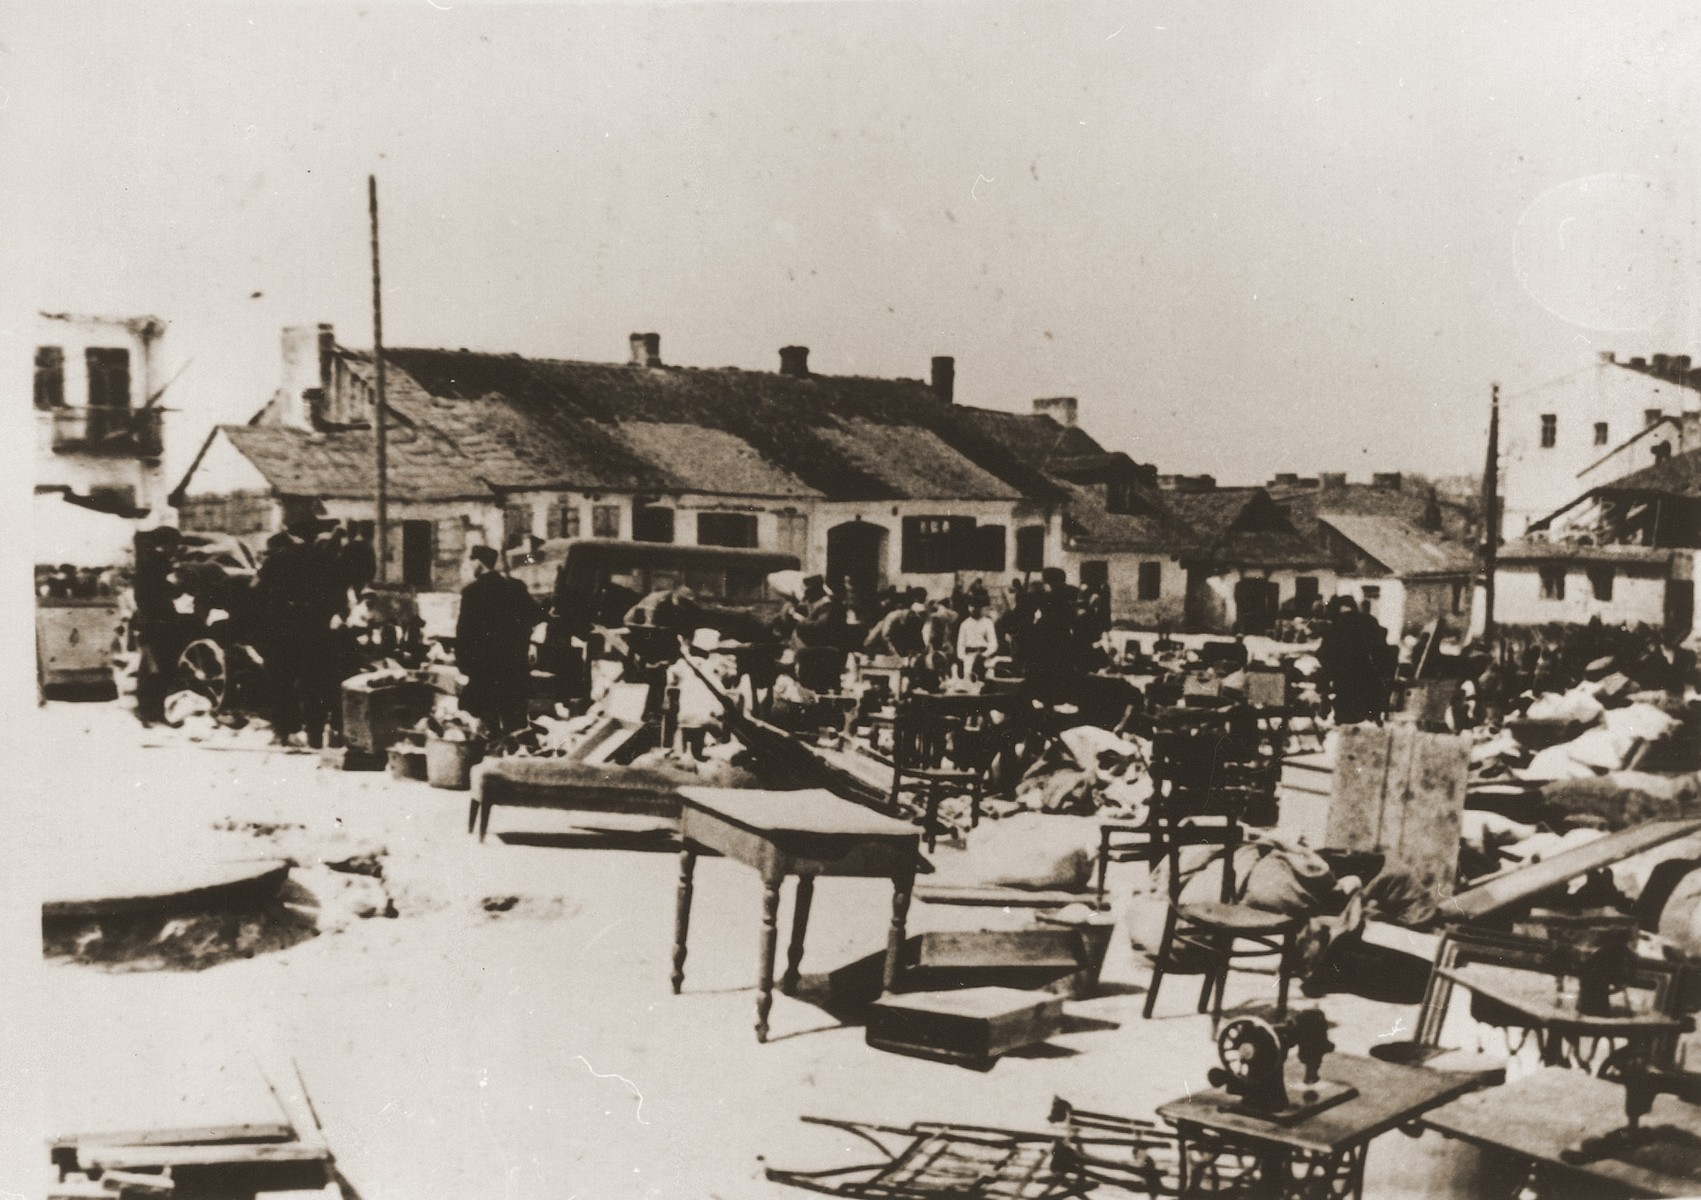 The furnishings of Jewish homes is collected and unloaded in a public square in the district of Wieniawa after the liquidation of the Lublin ghetto.